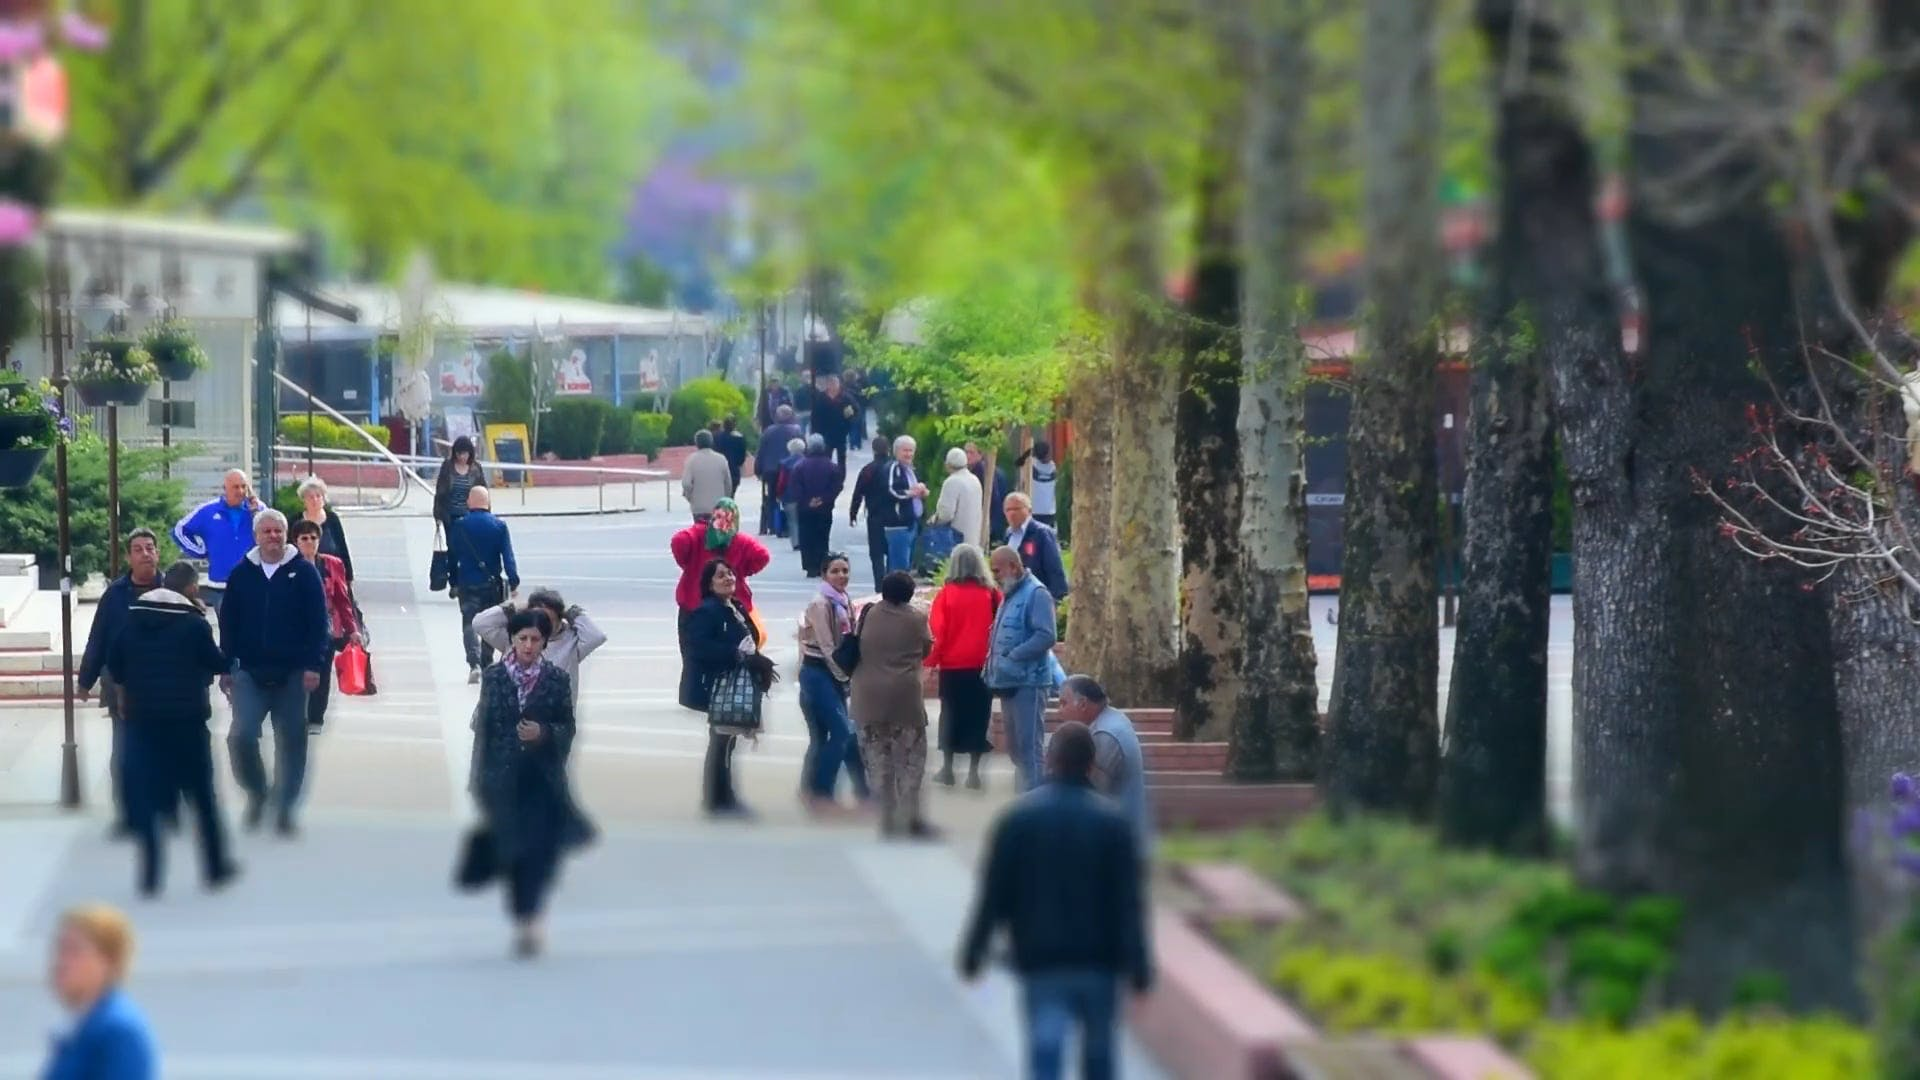 People Walking In The Park In Timelapse Mode